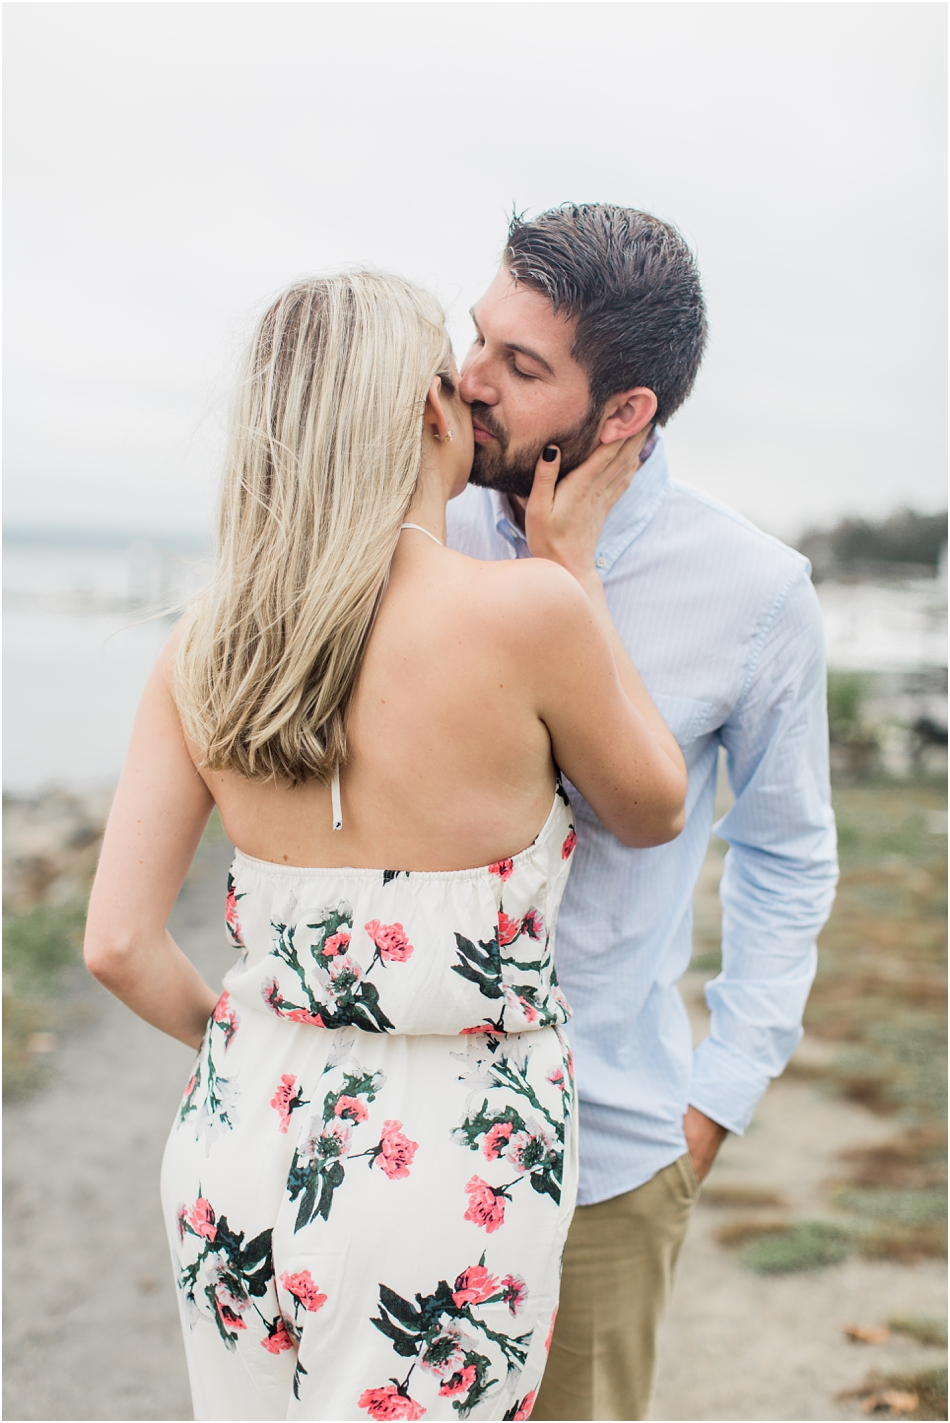 downtown_plymouth_engagement_lindsey_paul_cape_cod_boston_new_england_wedding_photographer_Meredith_Jane_Photography_photo_2795.jpg